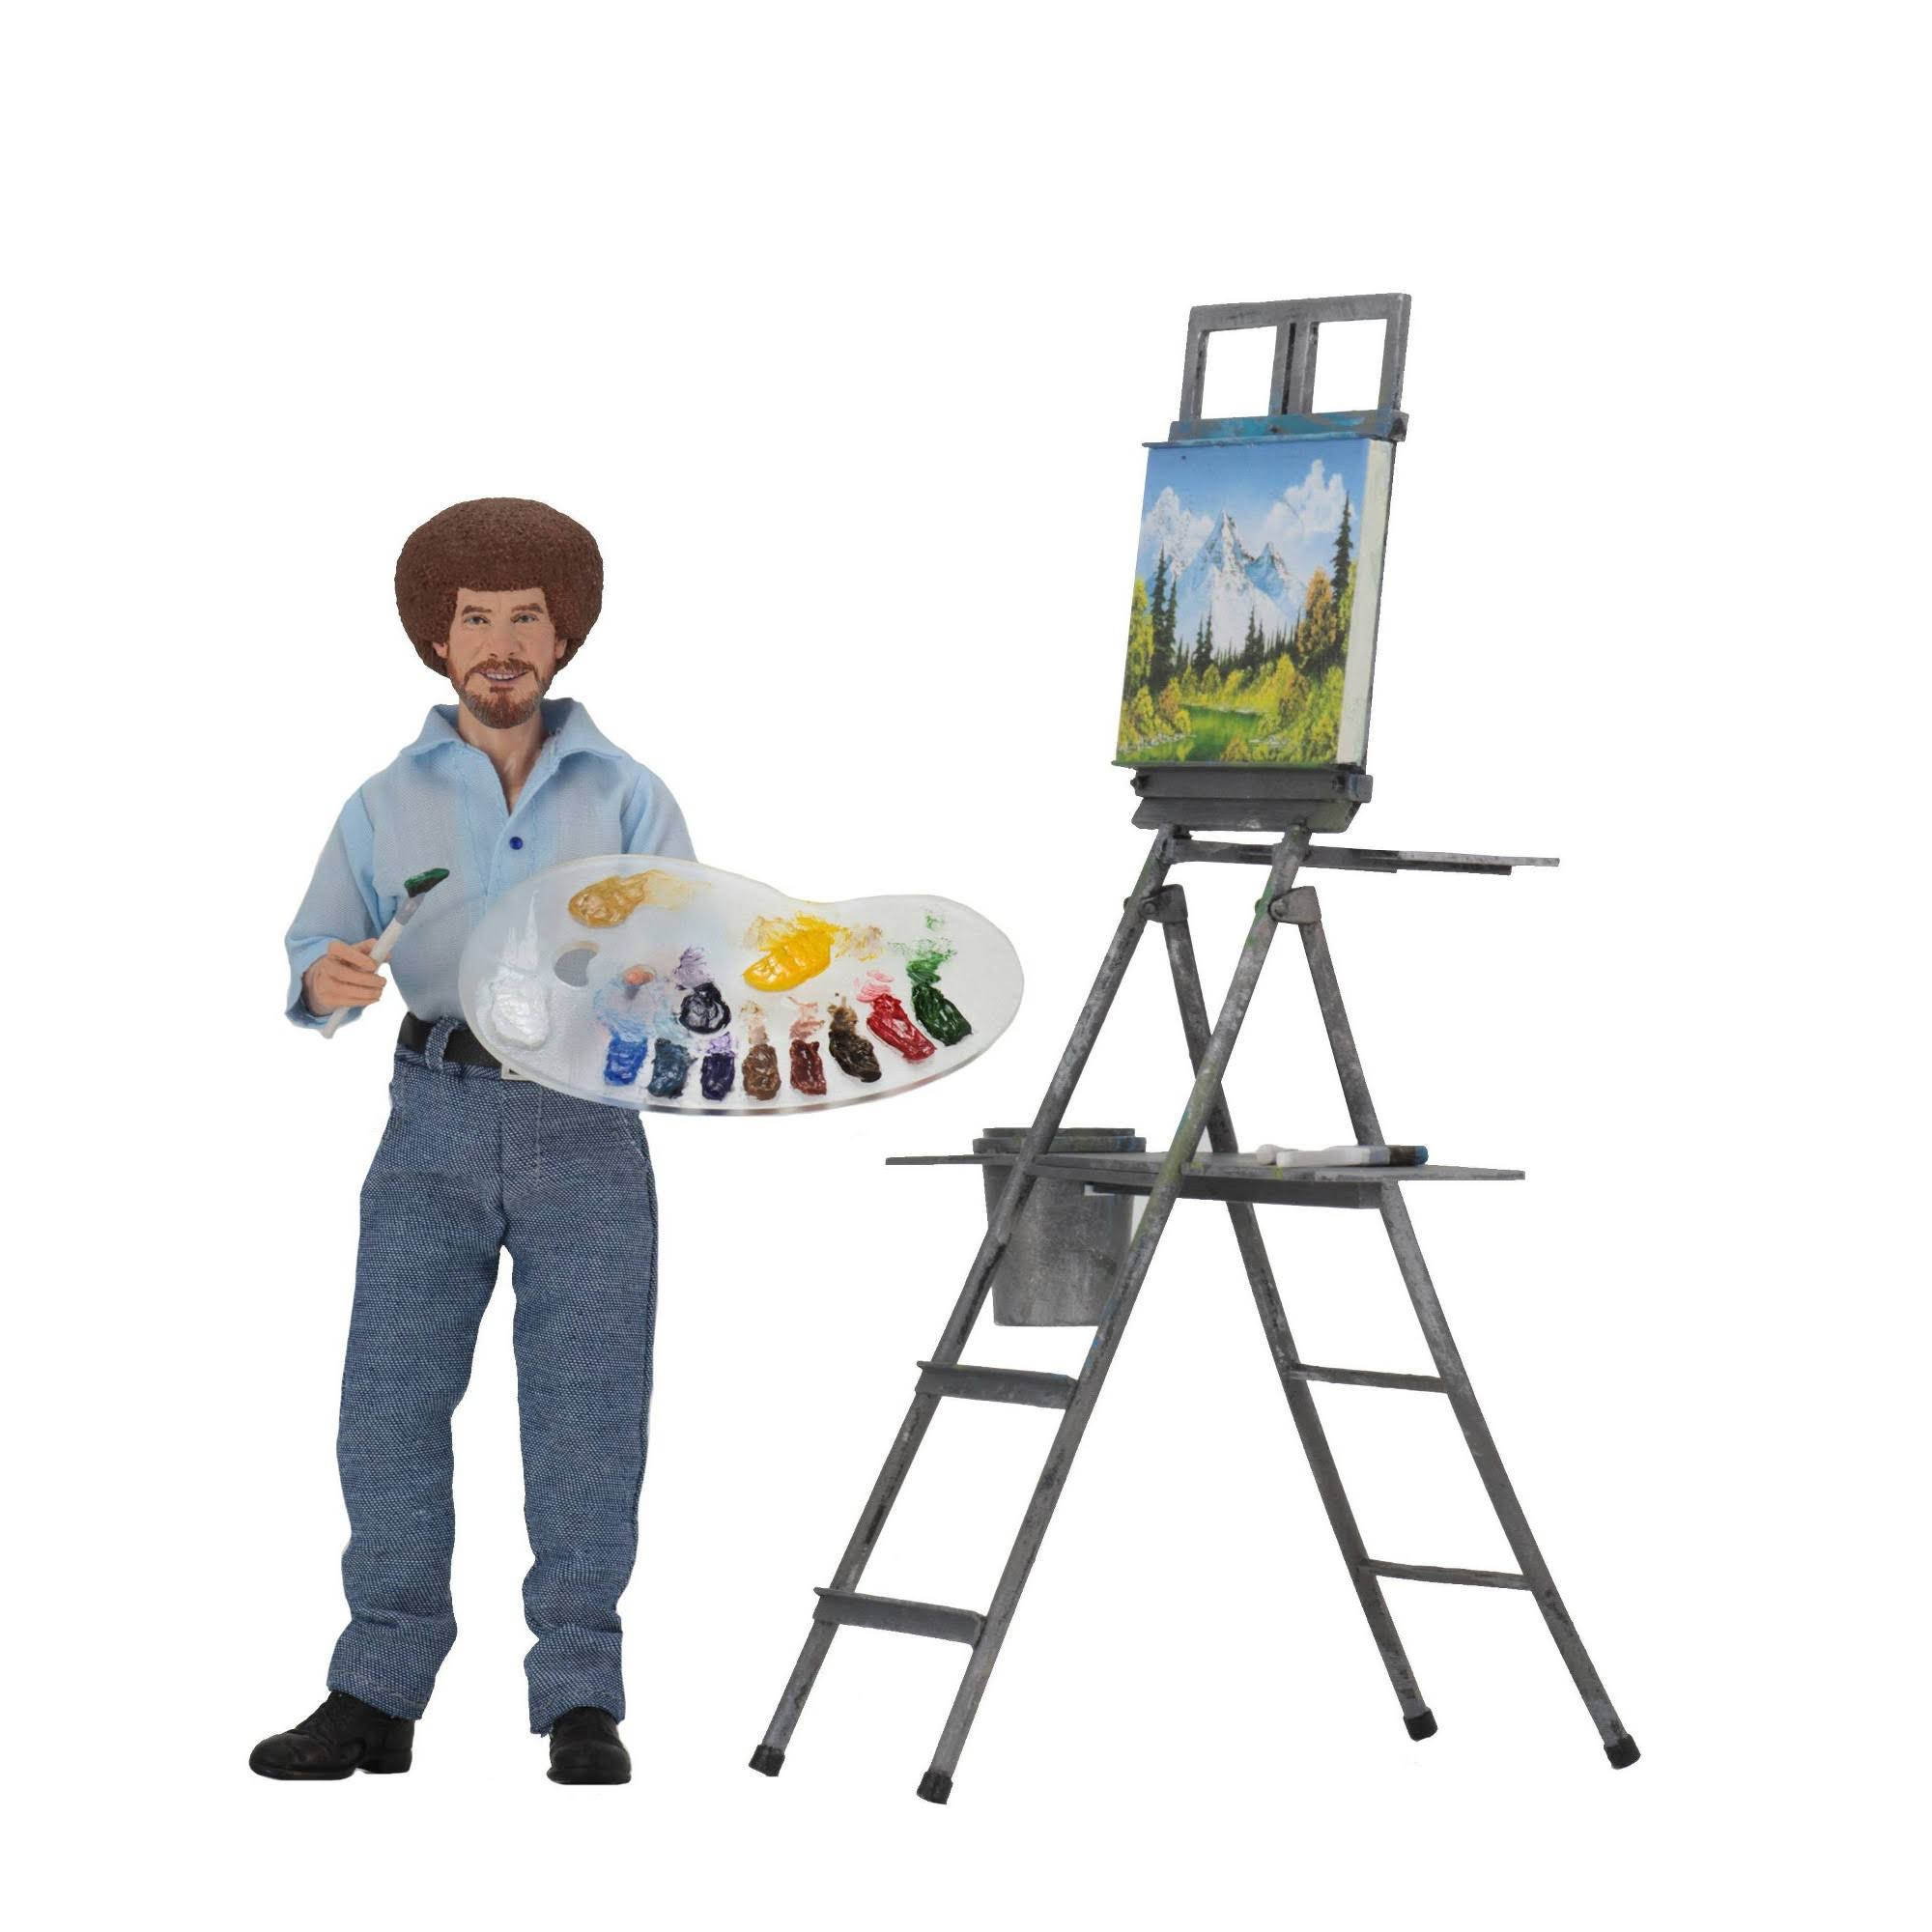 Neca Bob Ross Clothed Action Figure - The Joy of Painting, 8""